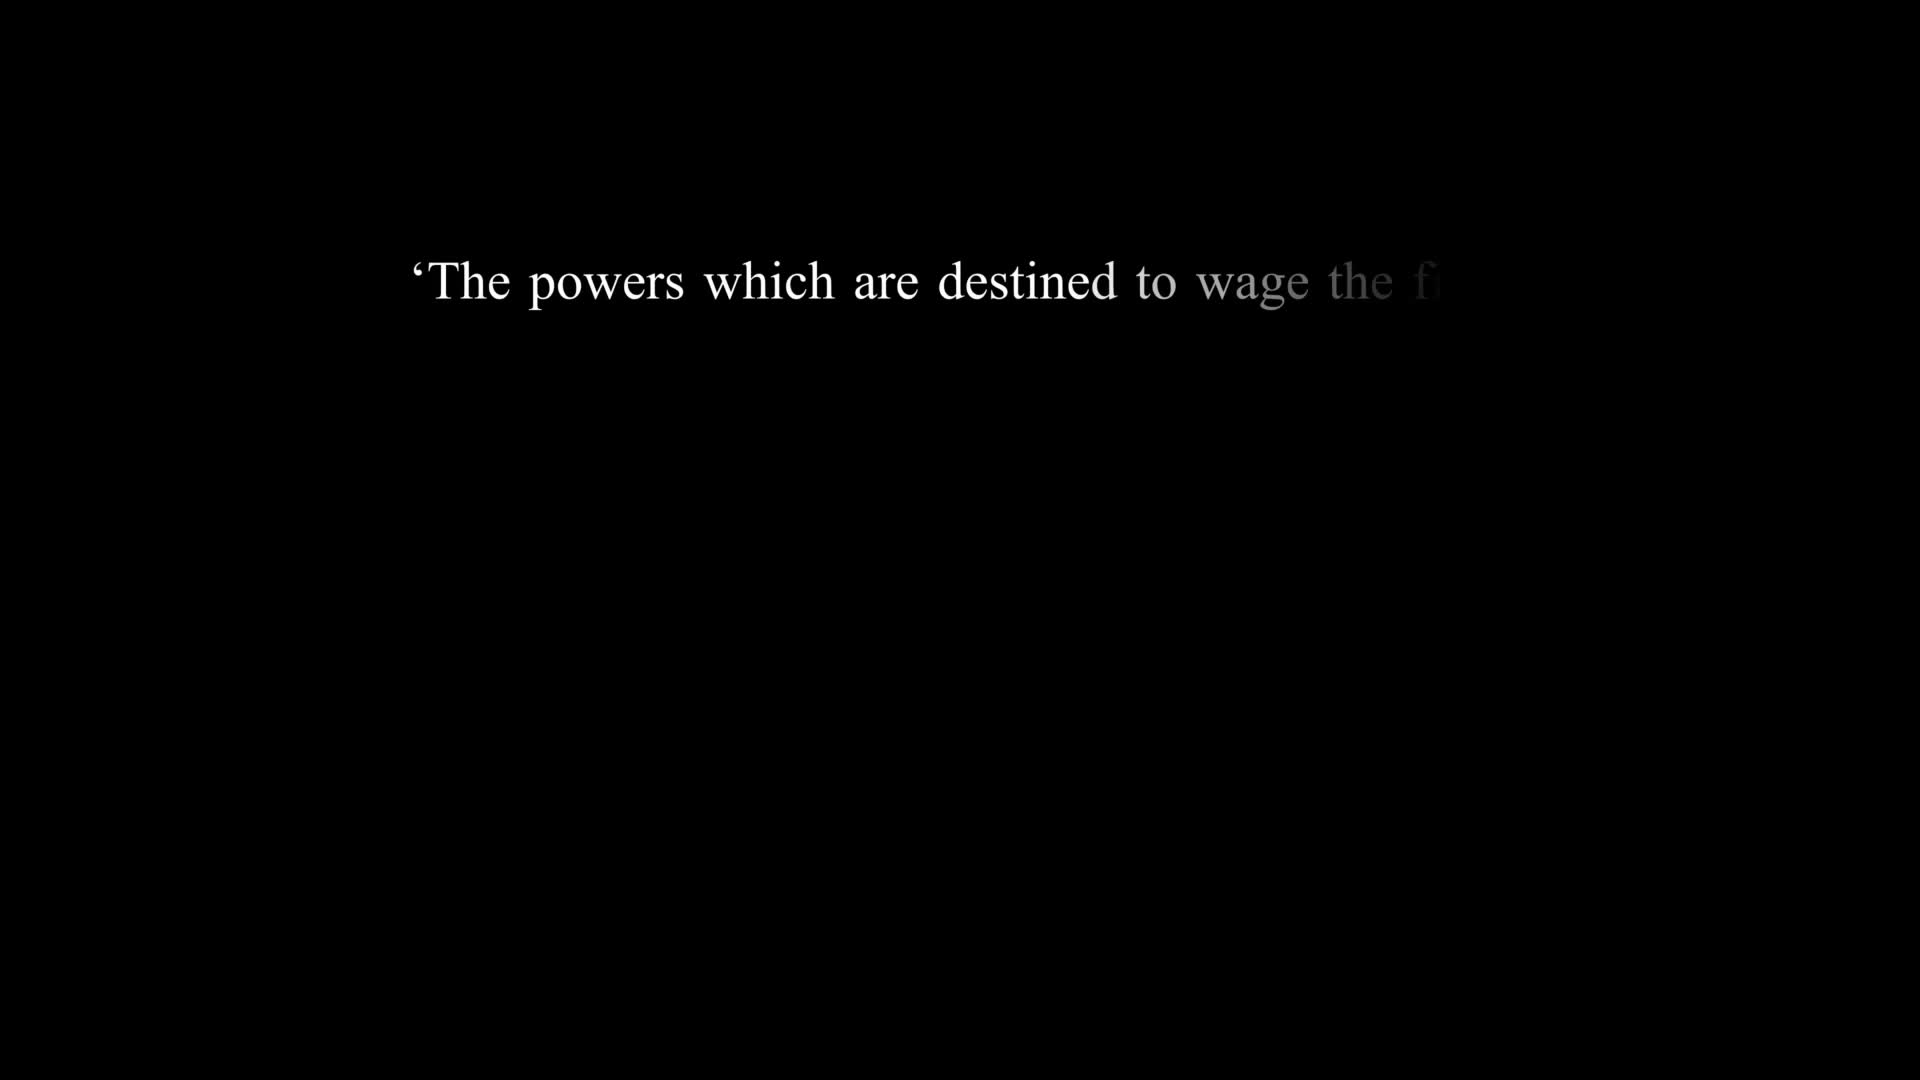 Traitor? - John Amery in his own words